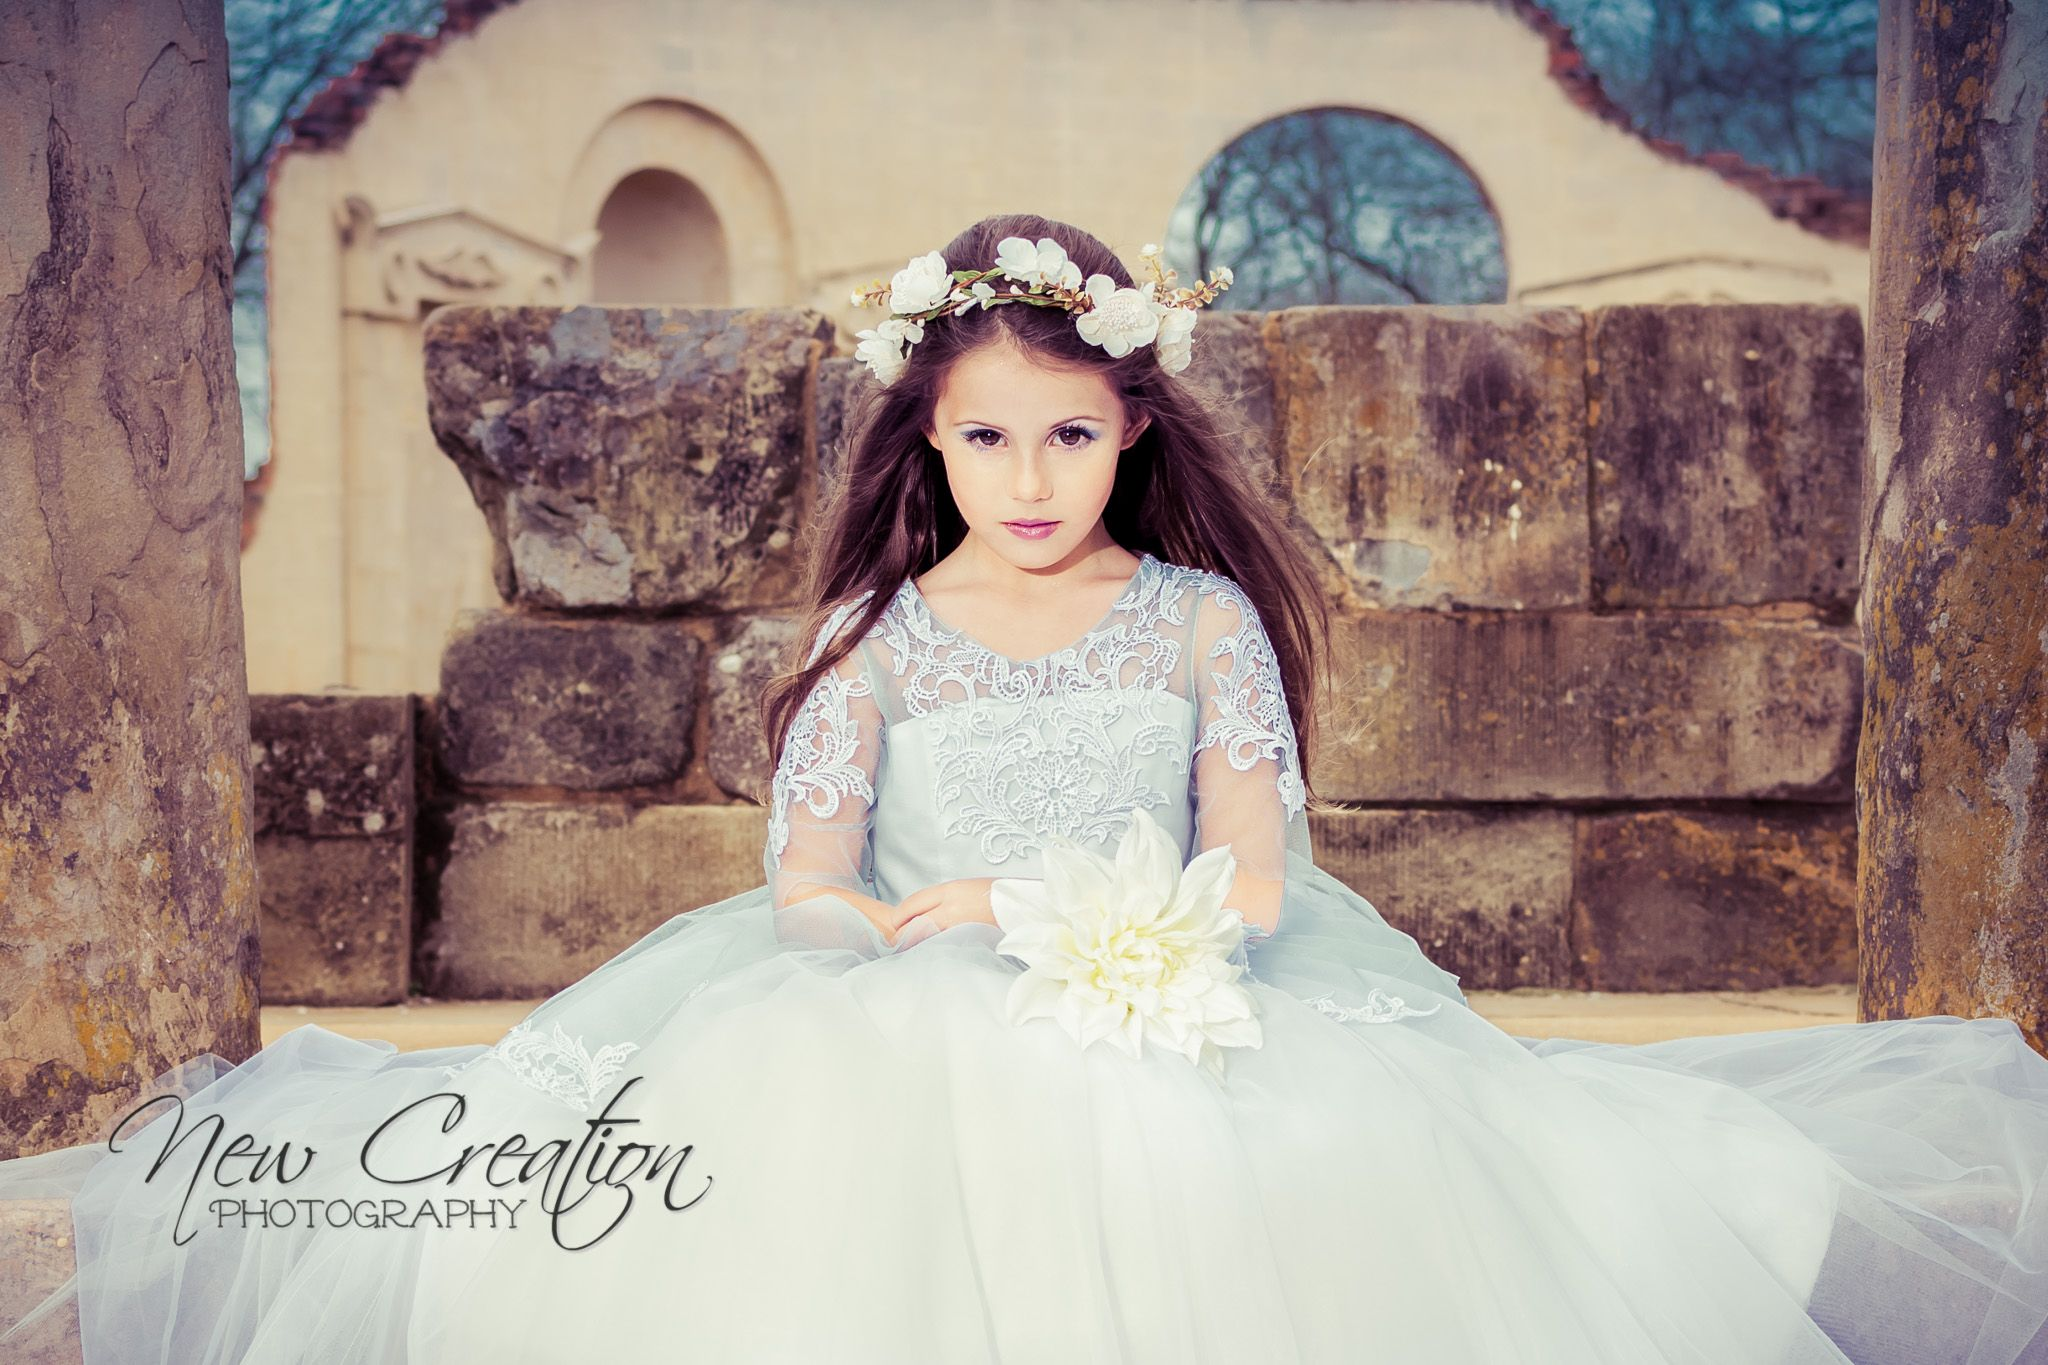 Pin by new creation photography on girls whimsical fantasy